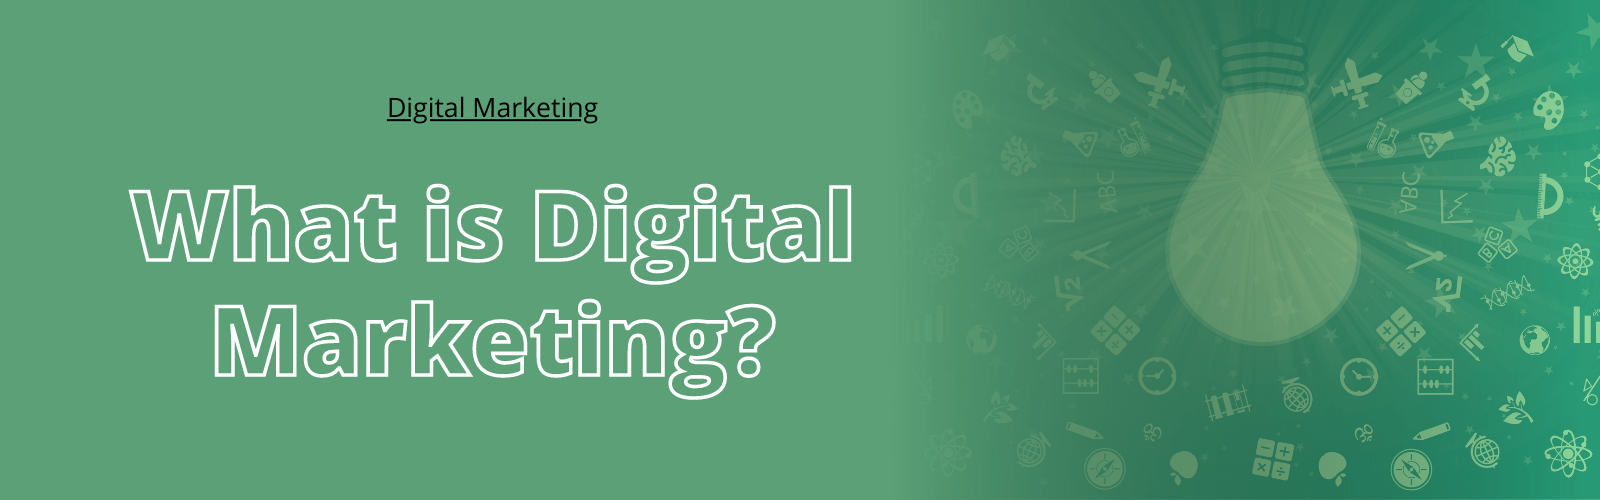 What is Digital Marketing exactly?